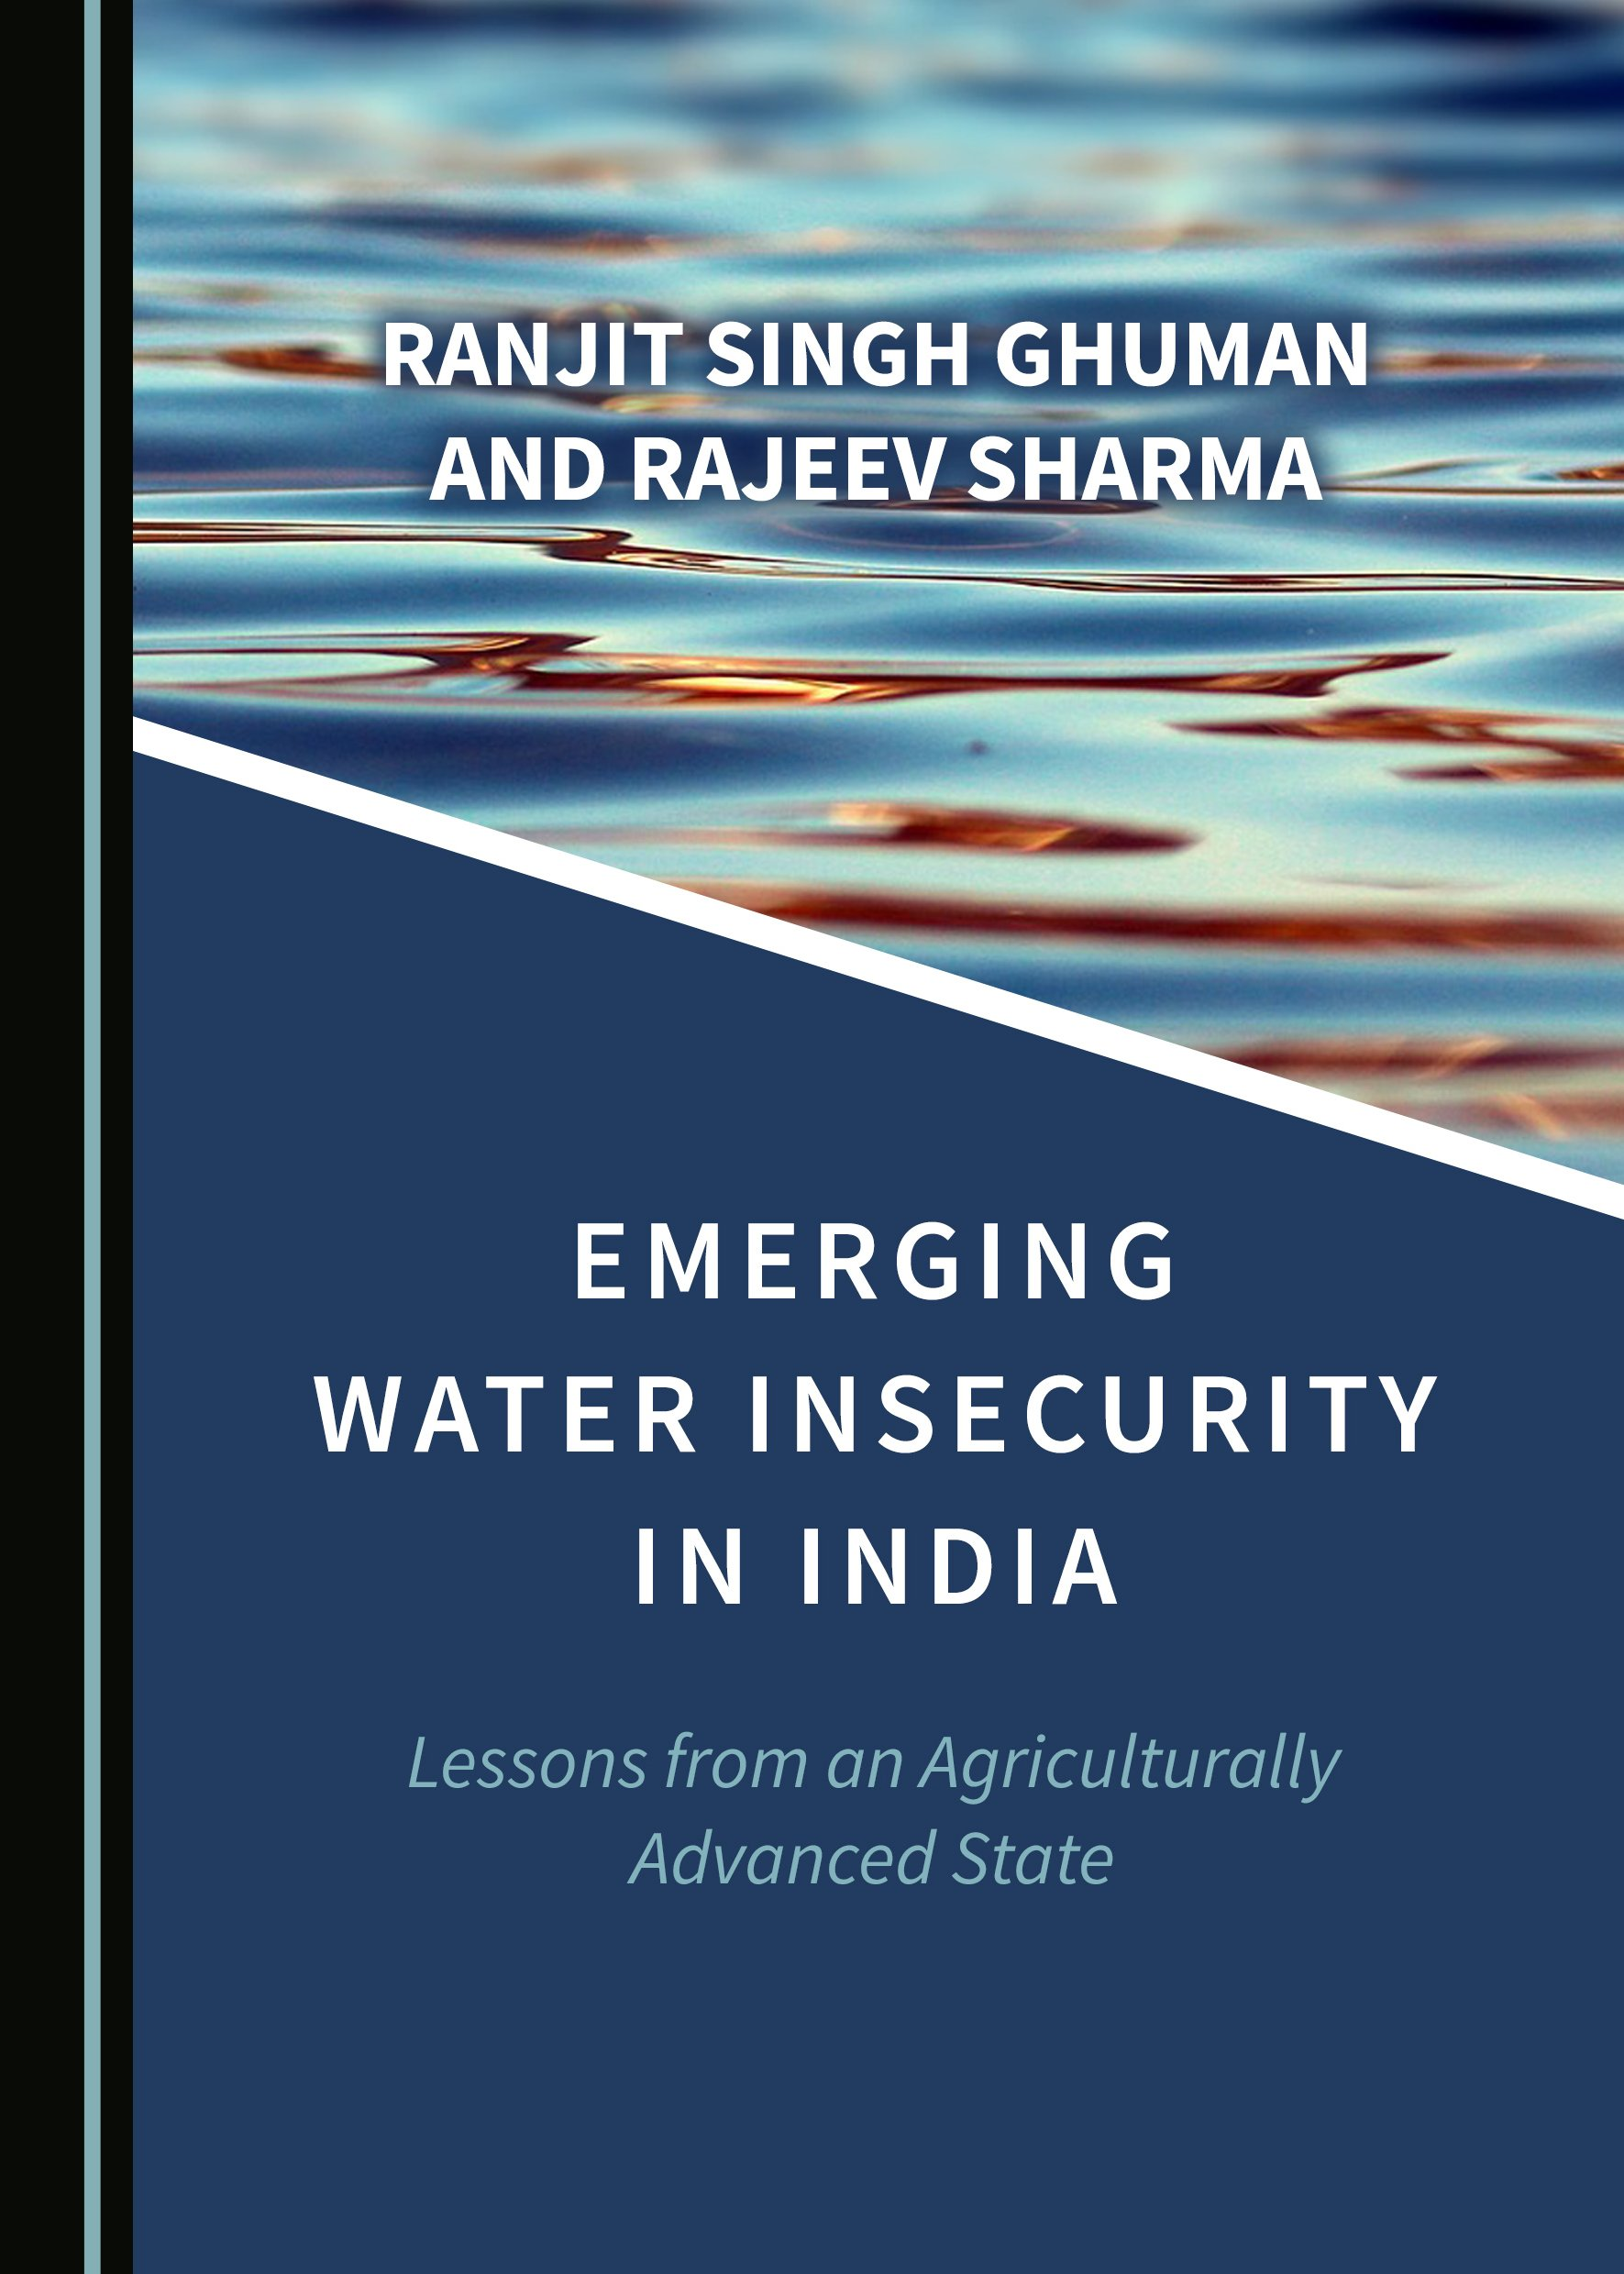 Emerging Water Insecurity in India: Lessons from an Agriculturally Advanced State